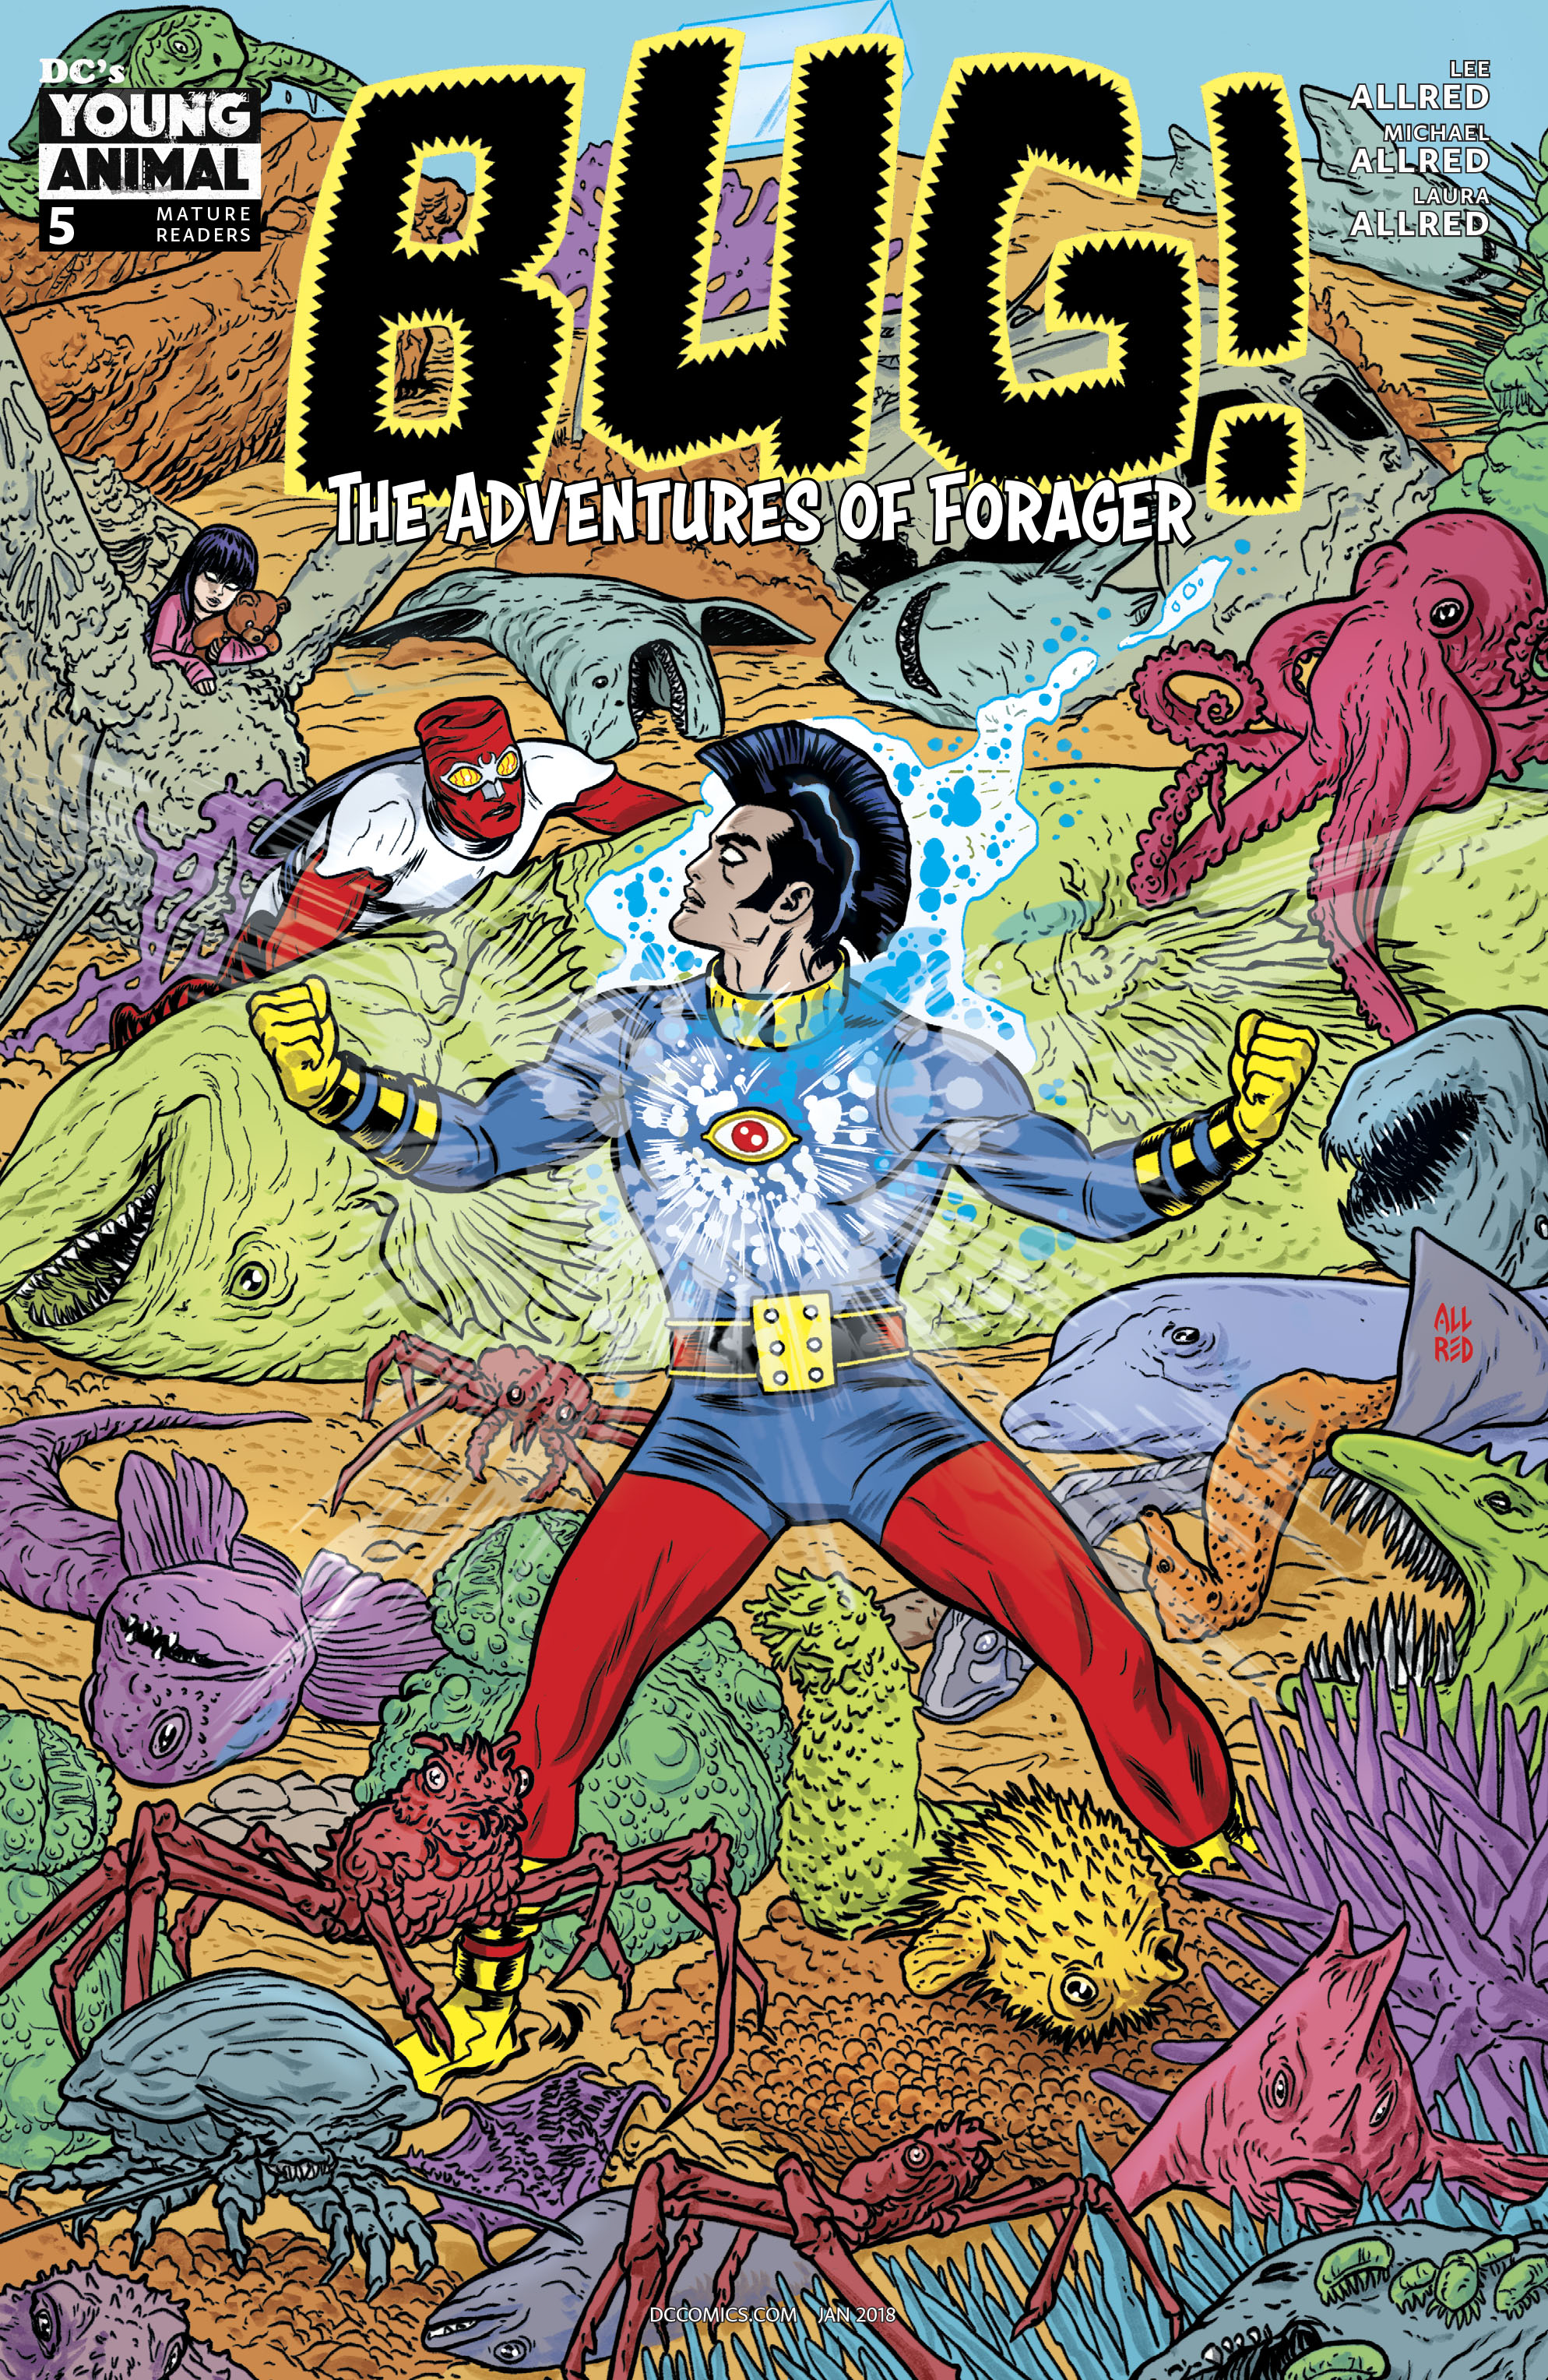 BUG THE ADVENTURES OF FORAGER #5 (OF 6) (RES) (MR)